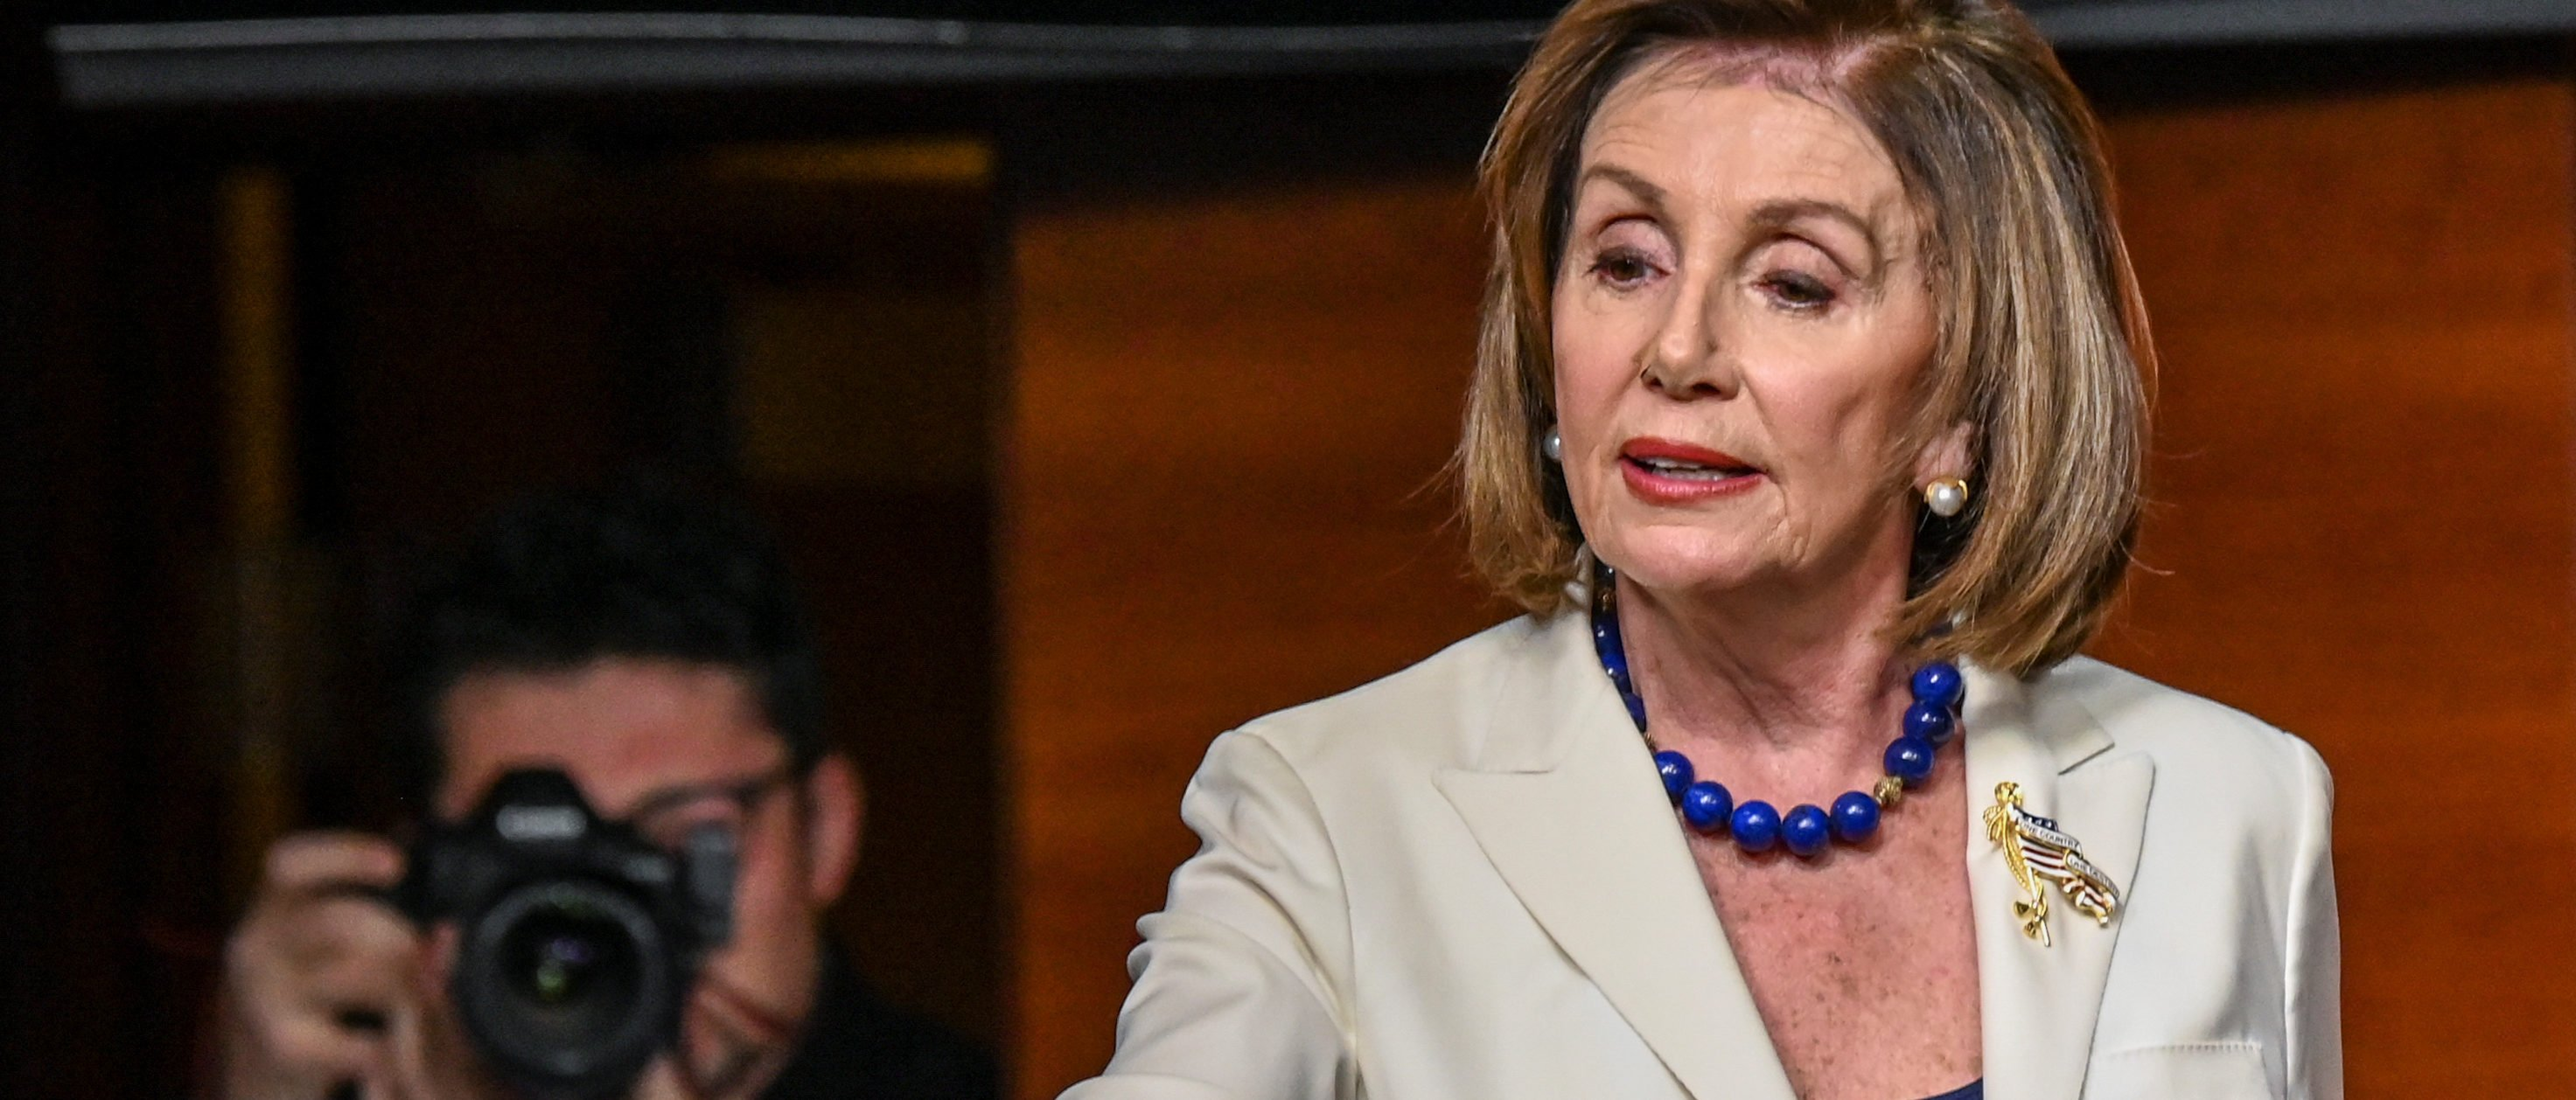 Patriots Impeachment Weekly Wrap-Up: From Pelosi, With Love